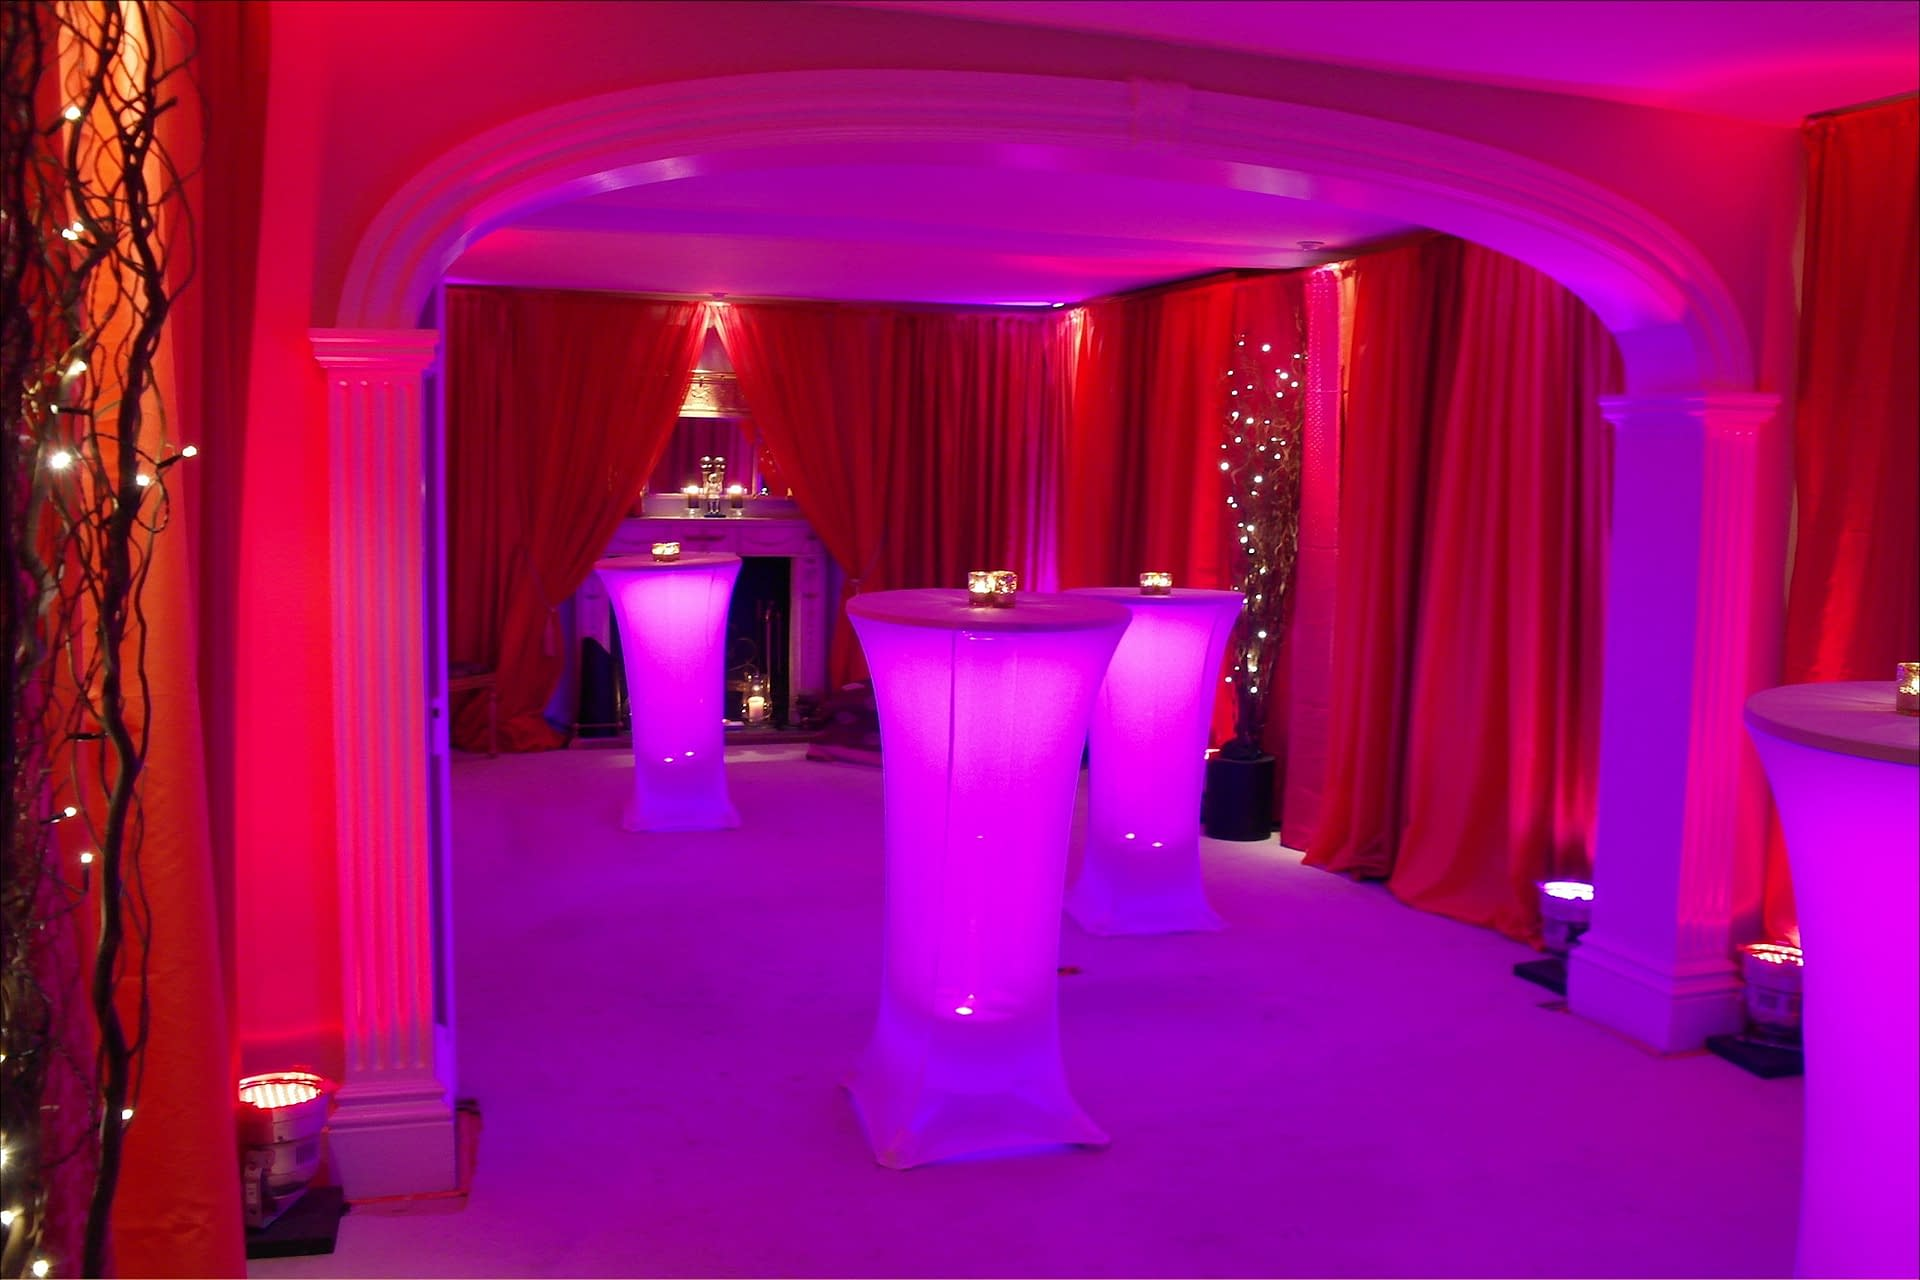 Bollywood themed party with vibrant wall drapes, lighting, furniture and props at a private house in the UK